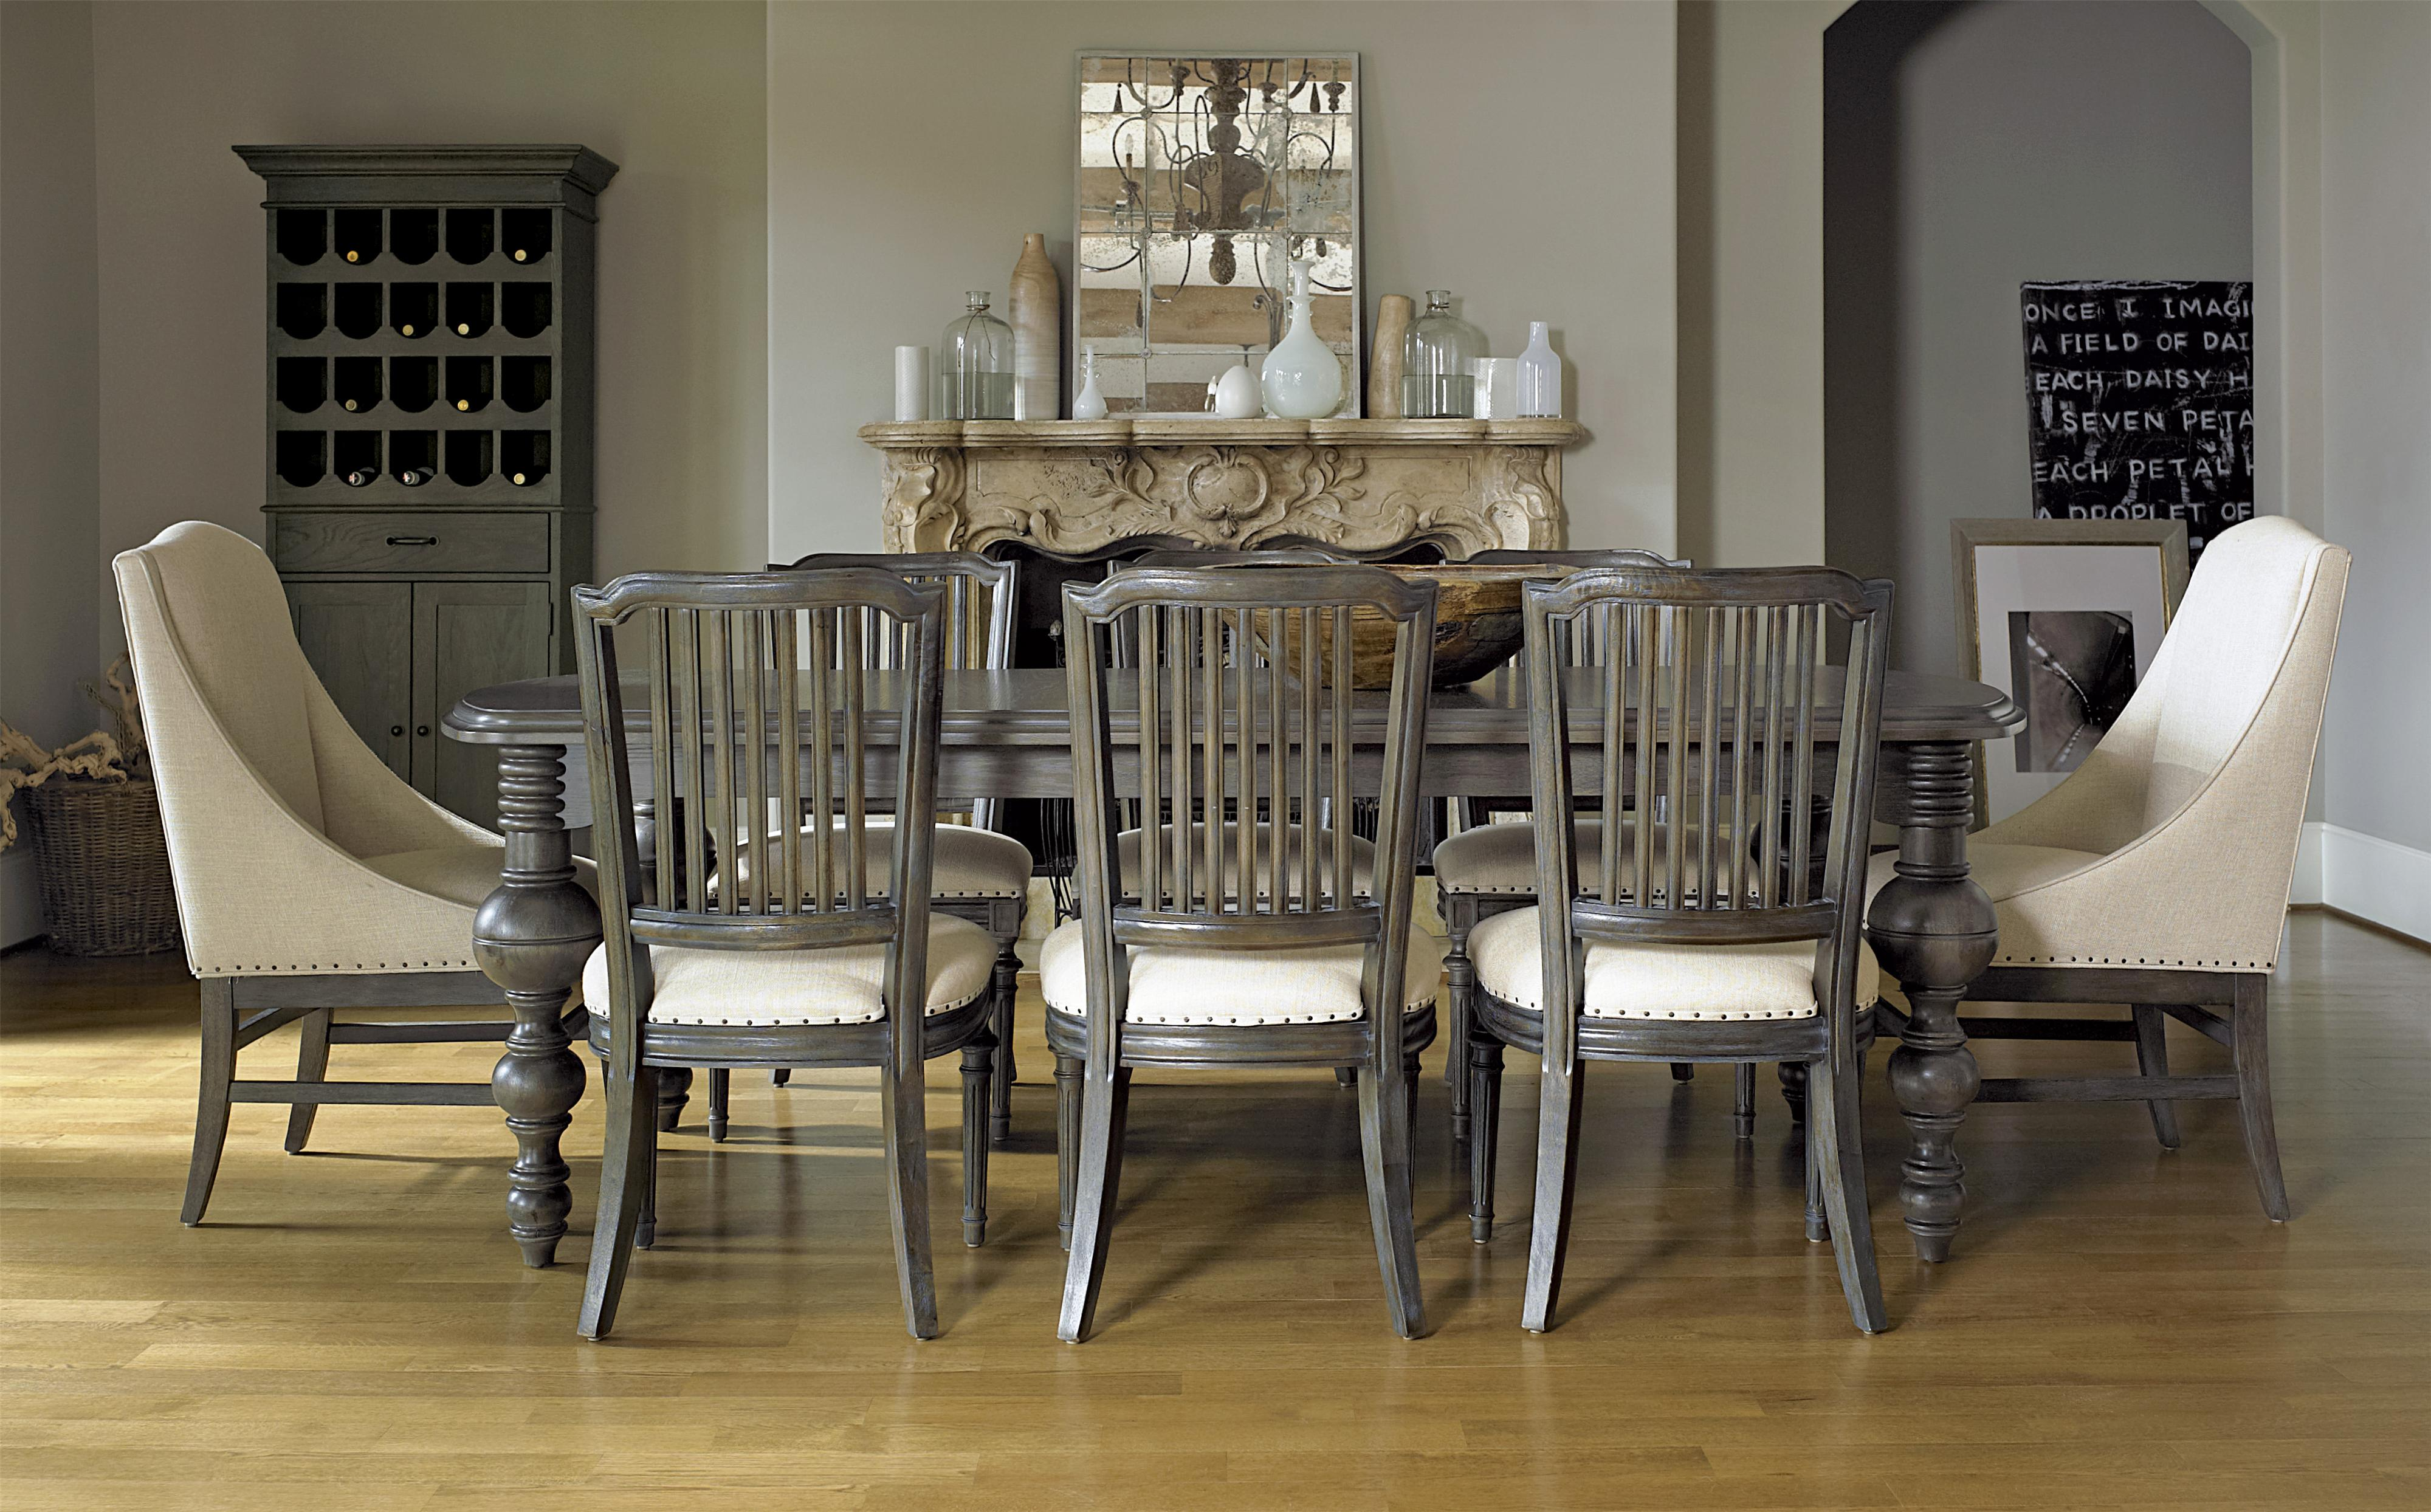 Double Duty Dining Rooms Ideas And Inspiration To Optimize Your Space